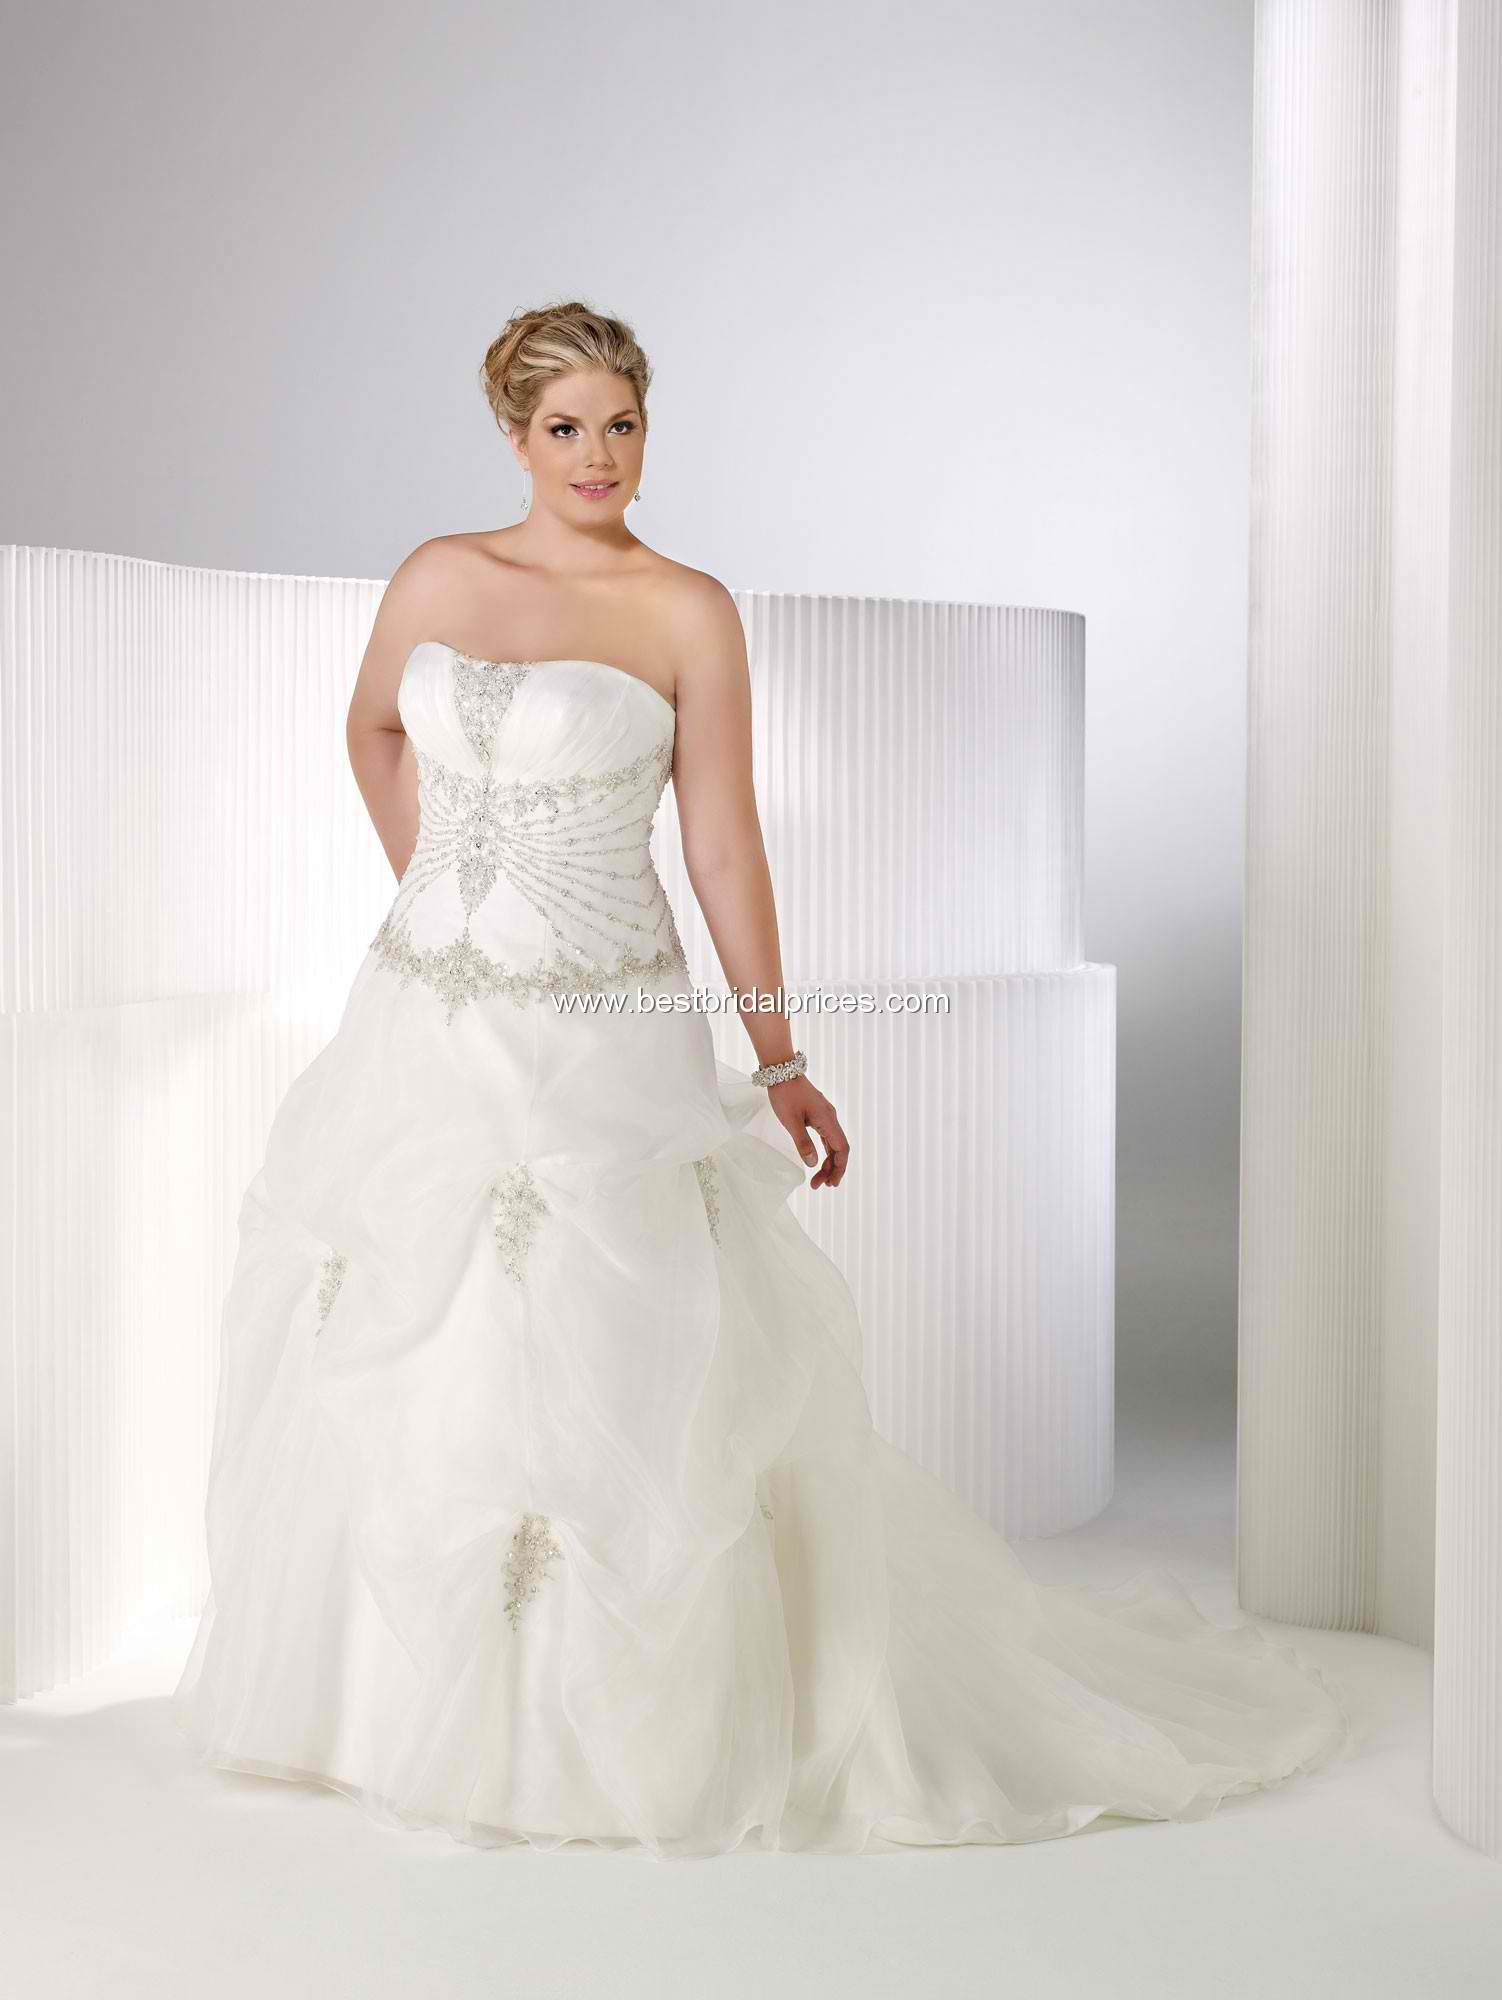 Top 10 plus size wedding dresses for the gorgeous bride for Best wedding dress styles for plus size brides